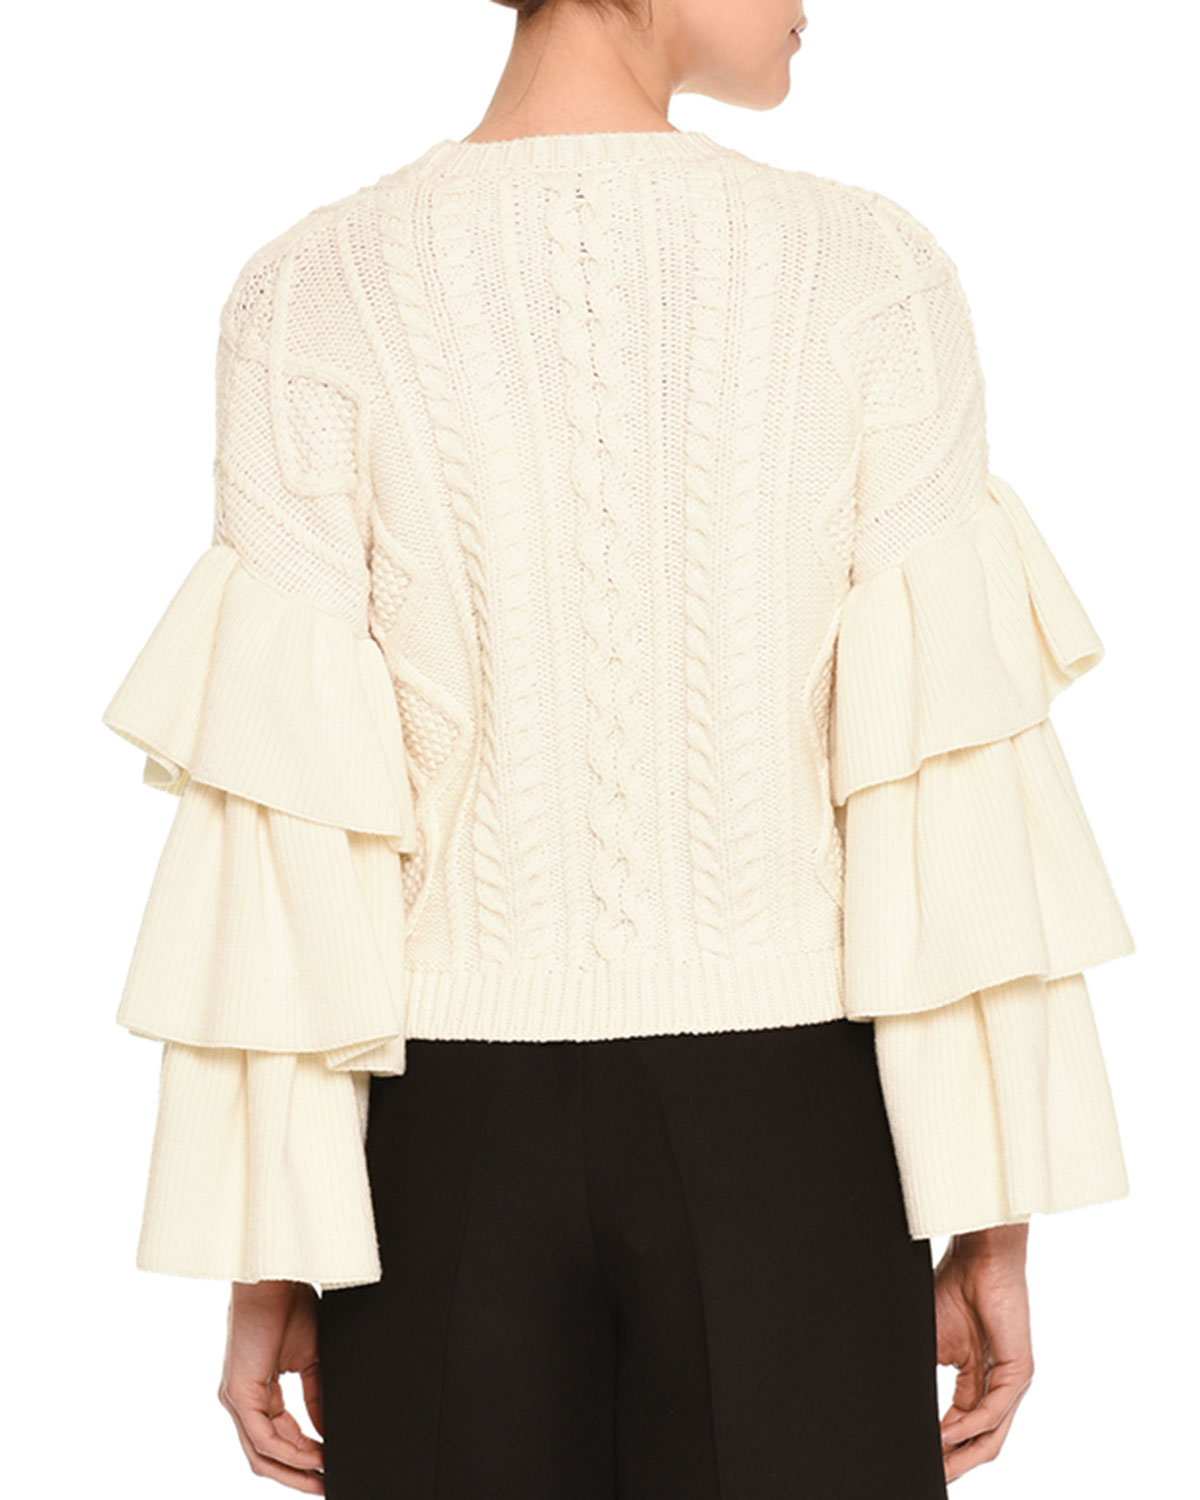 Valentino Voulant Tiered Cable-knit Sweater in Natural